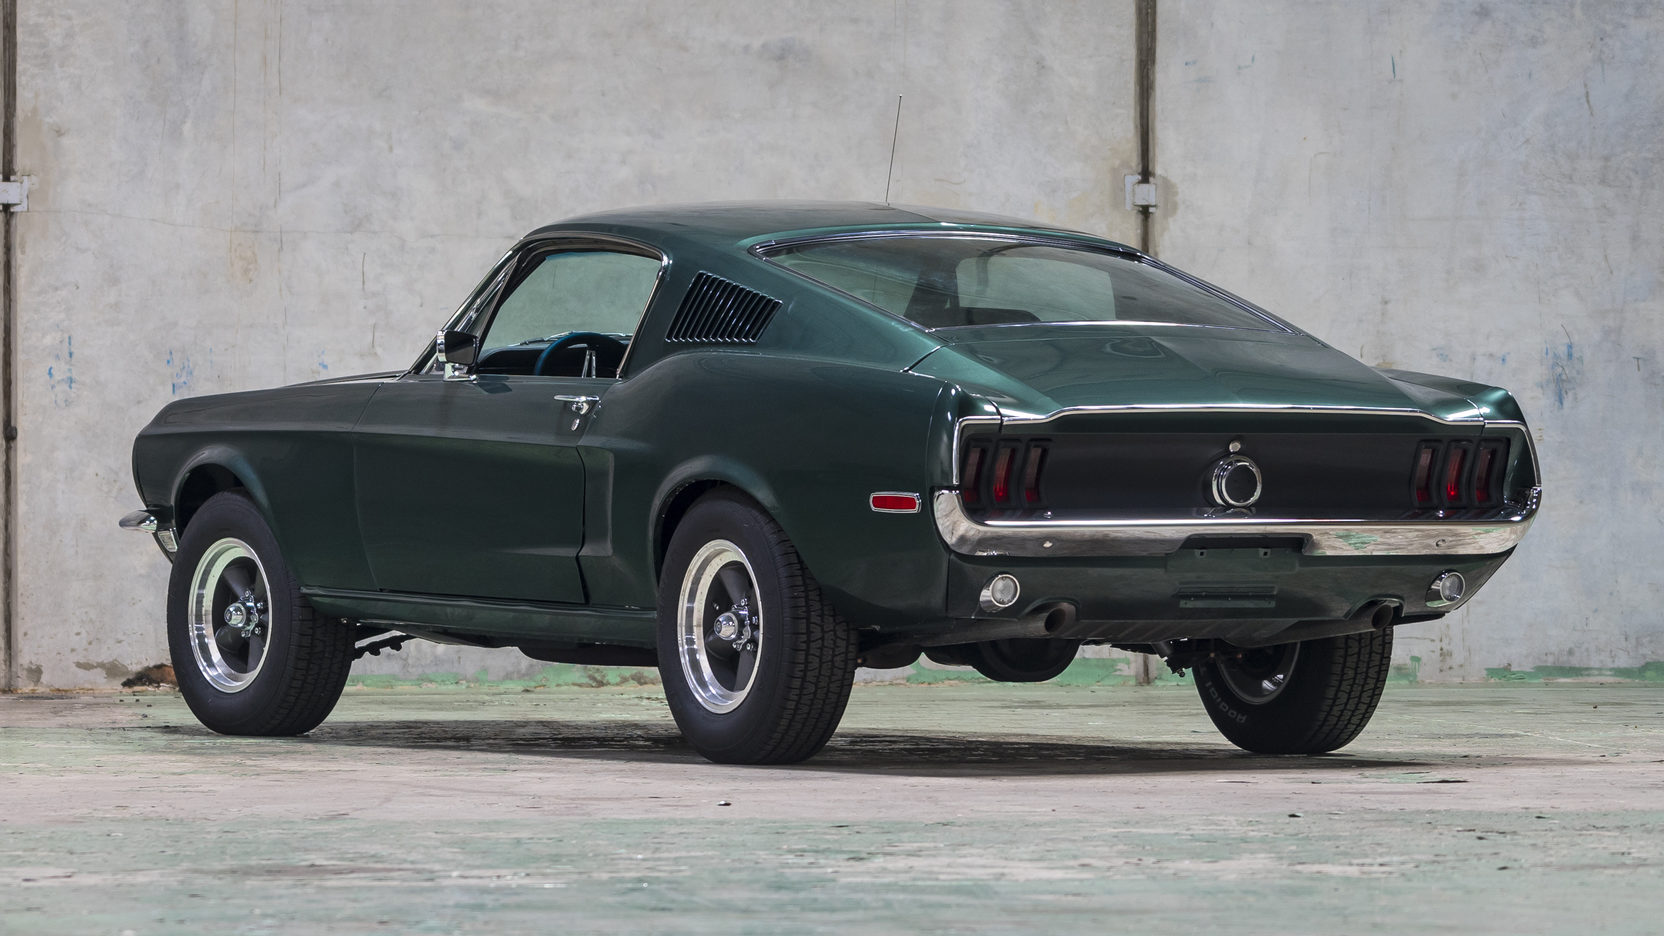 The bullitt spec mustang shown here